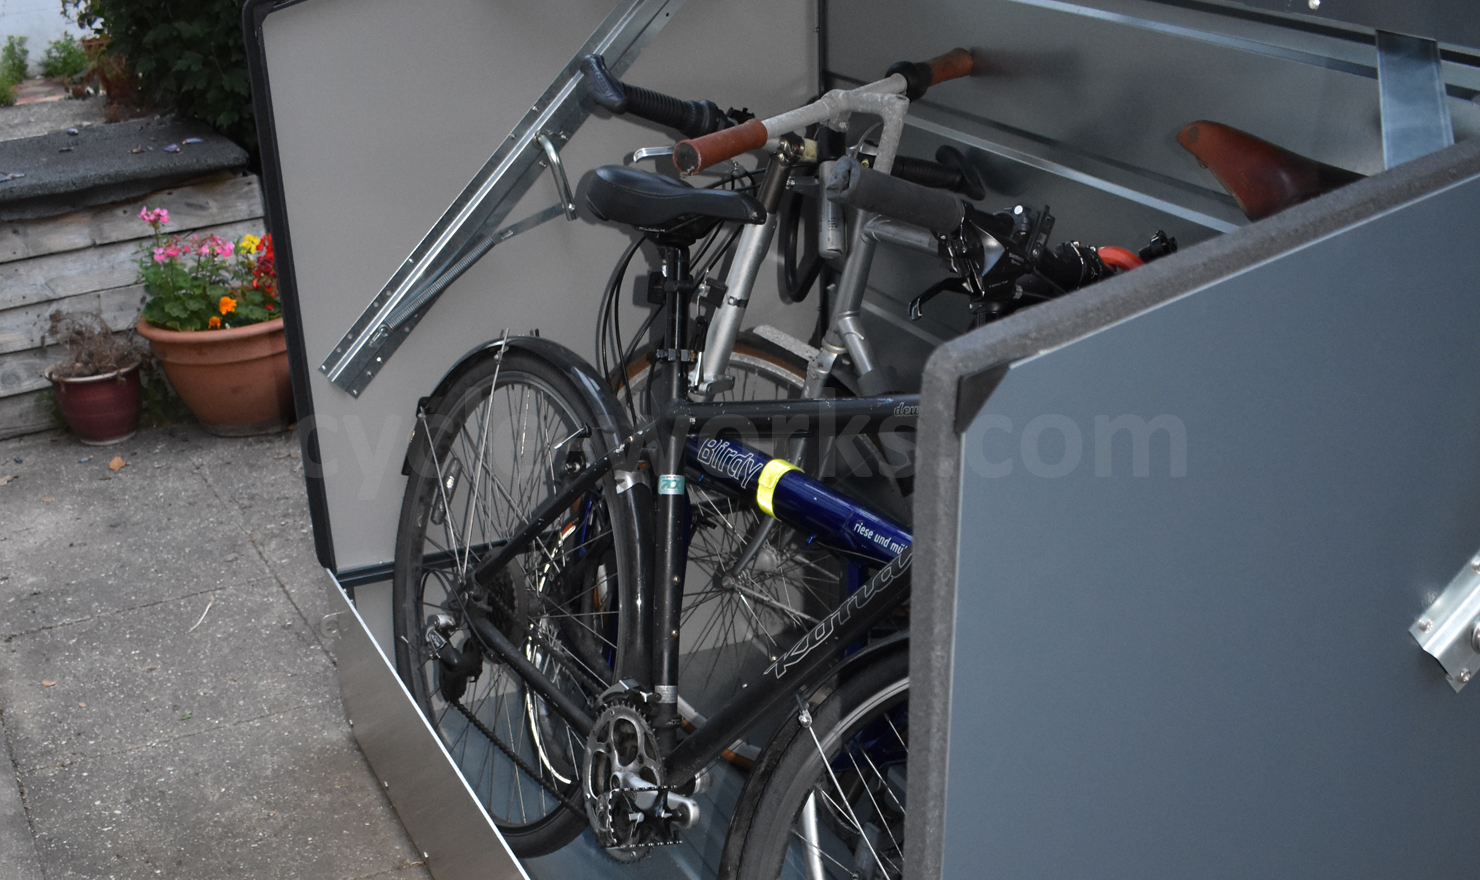 Bike Bunker Home Cycle Storage